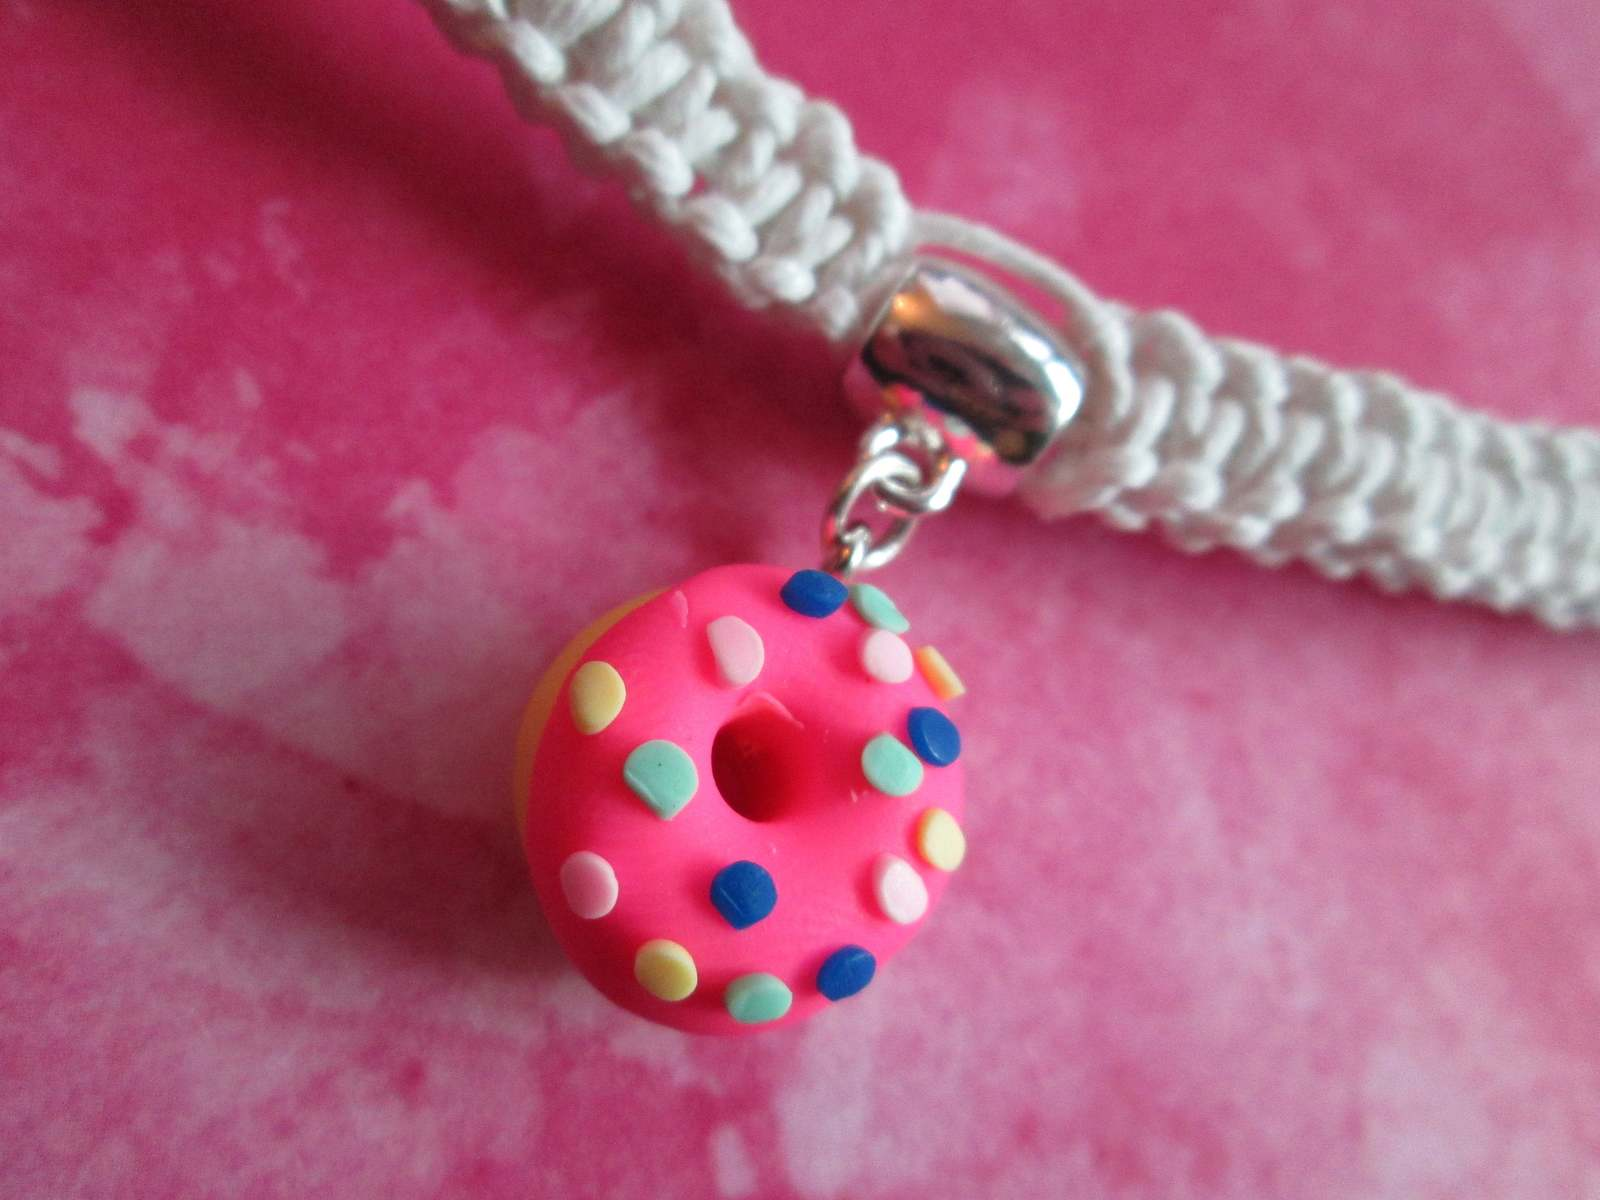 Handmade White Hemp Necklace with Awesome Pink Sprinkled Doughnut Charm Pendant